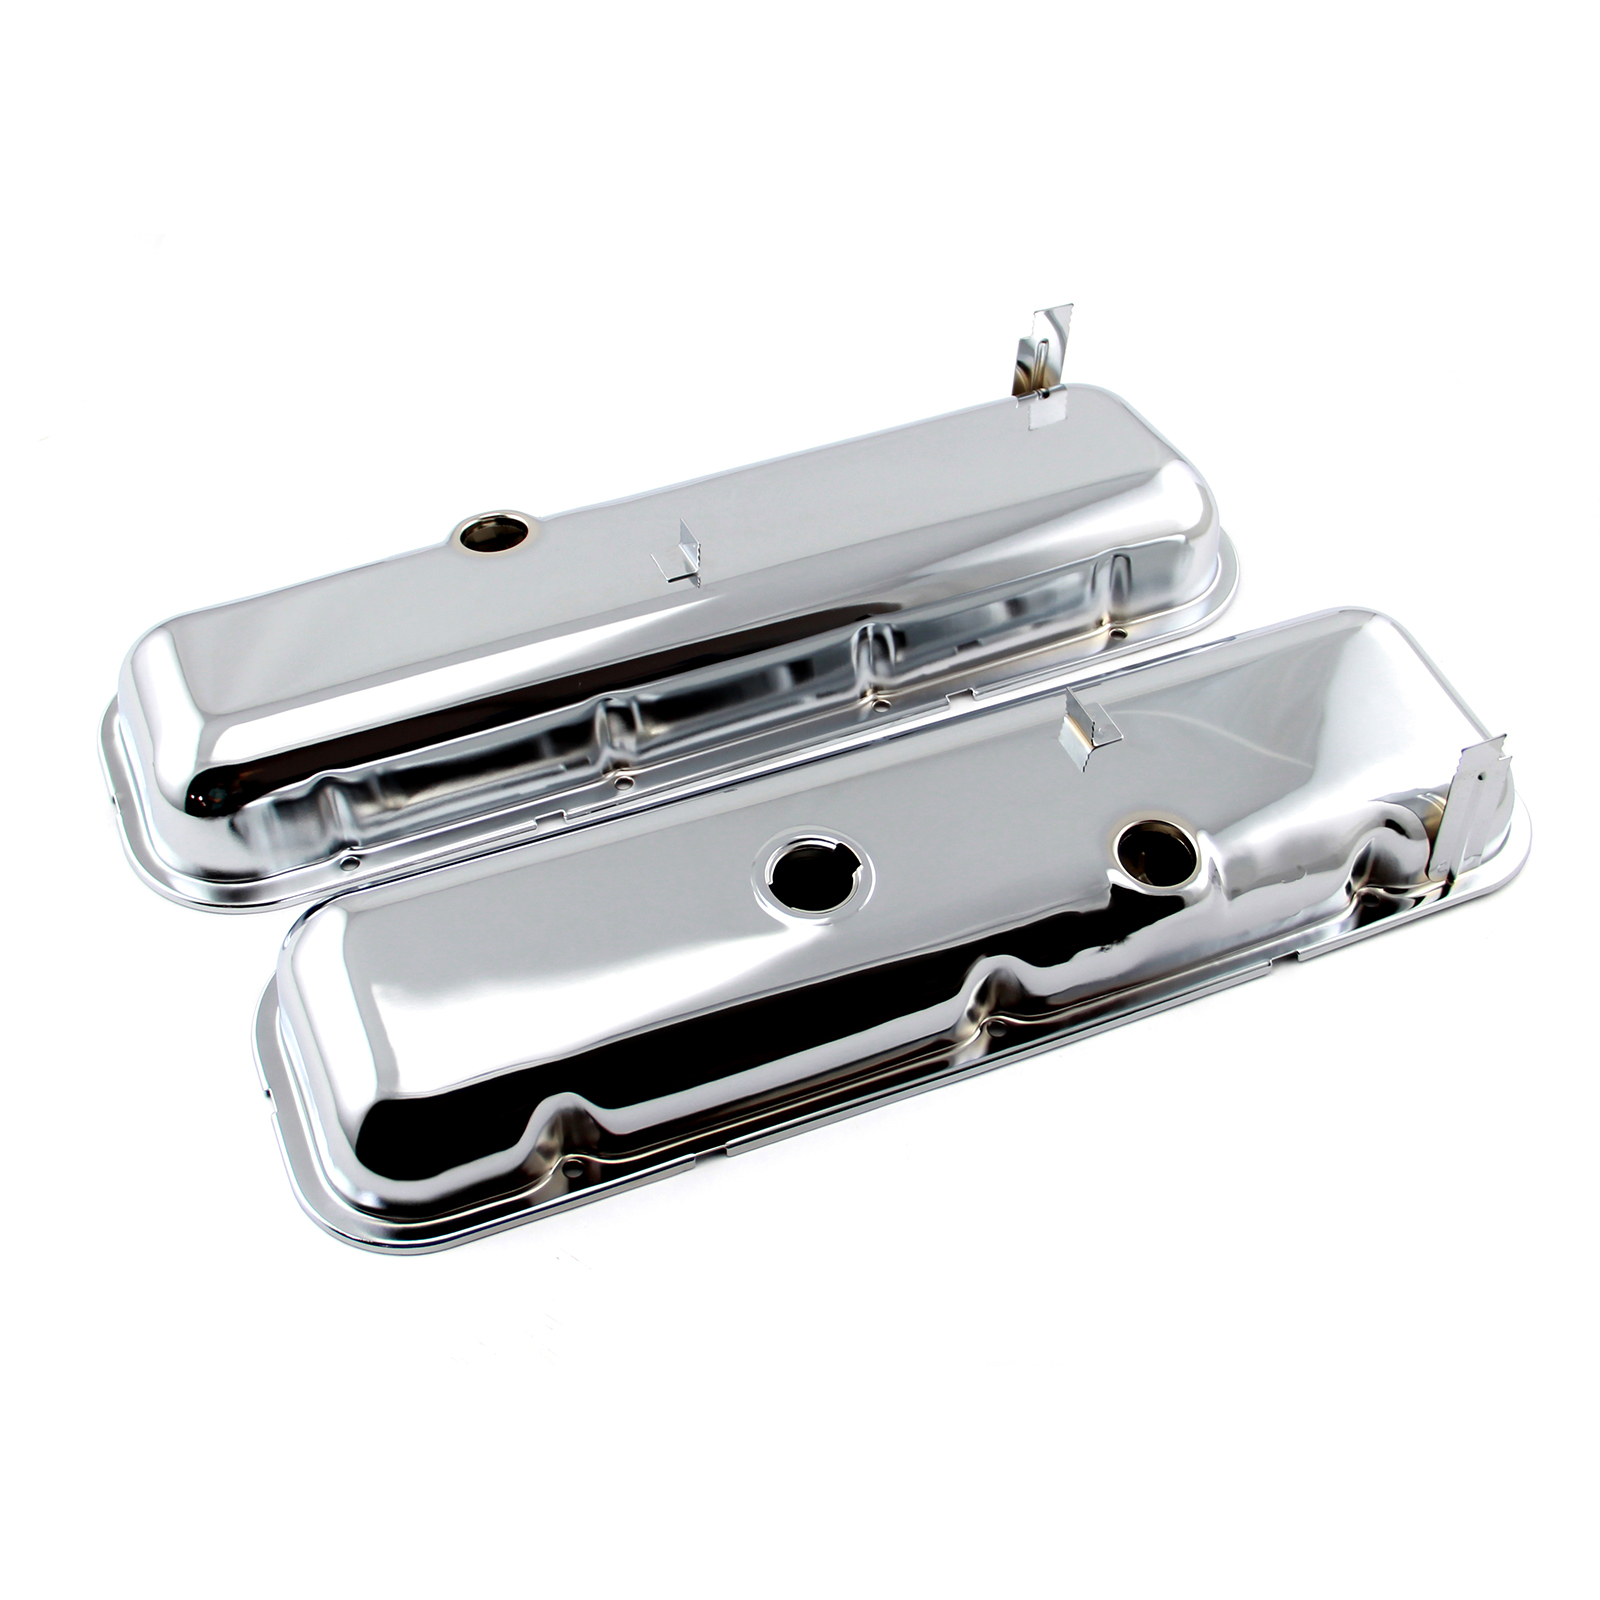 Chevy BBC 454 STD Style Chrome Valve Covers - Short w/ Baffled Hole